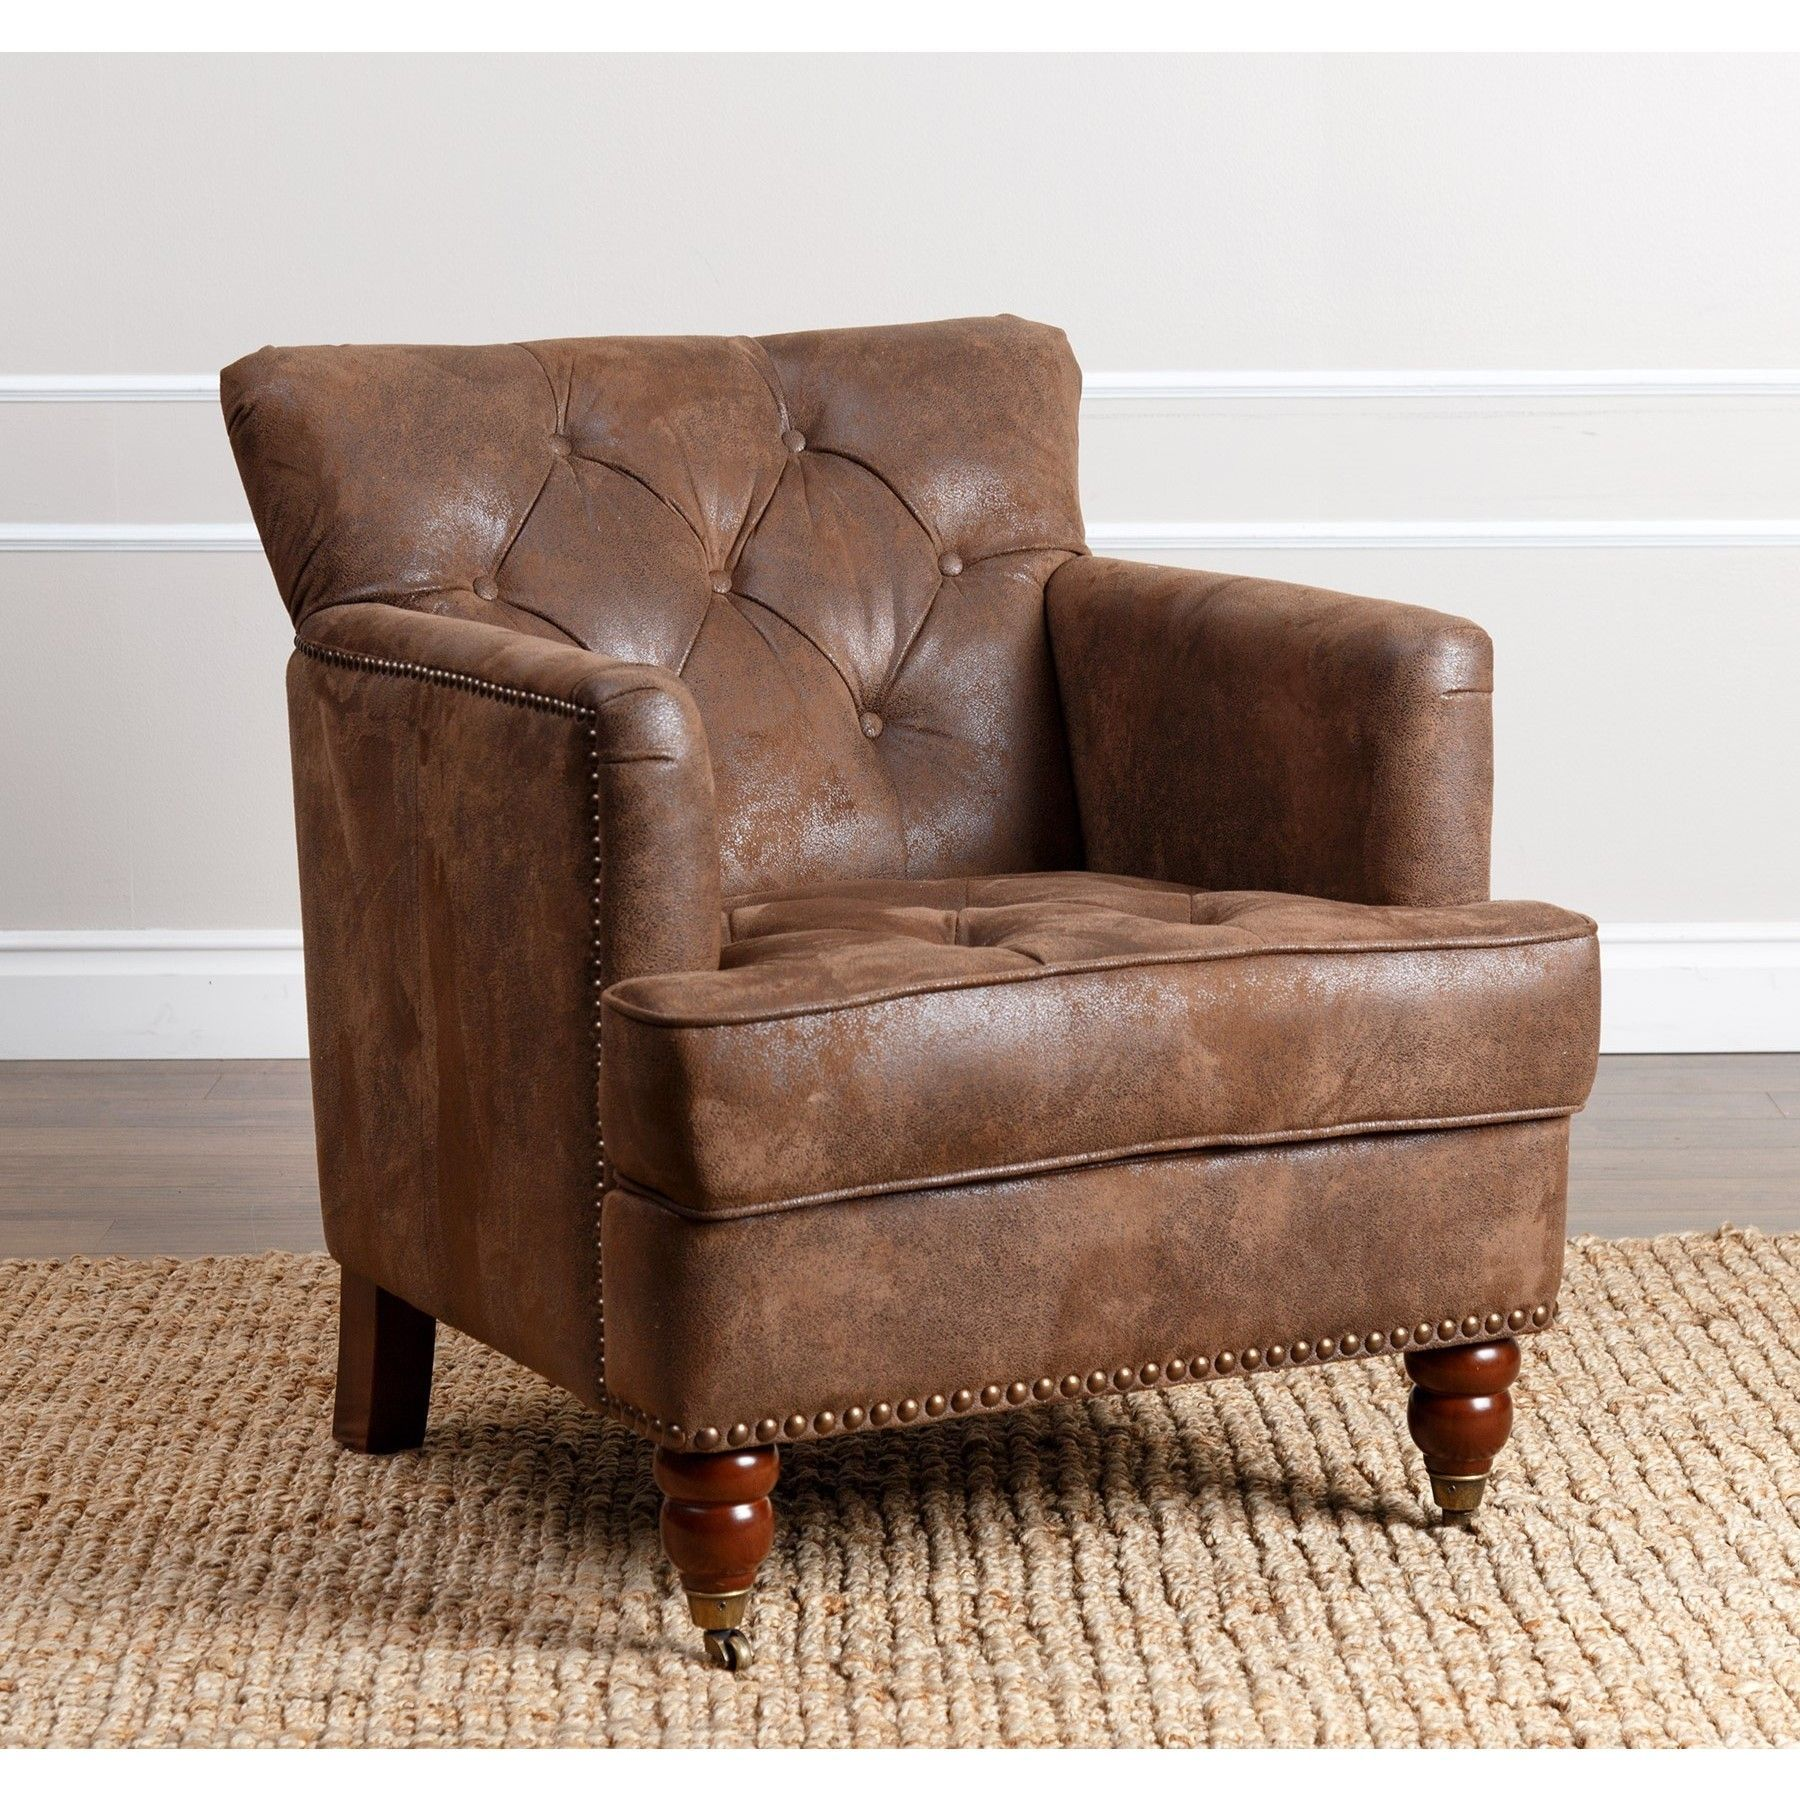 Add style to your home with the antique brown Tafton chair. This  high-quality